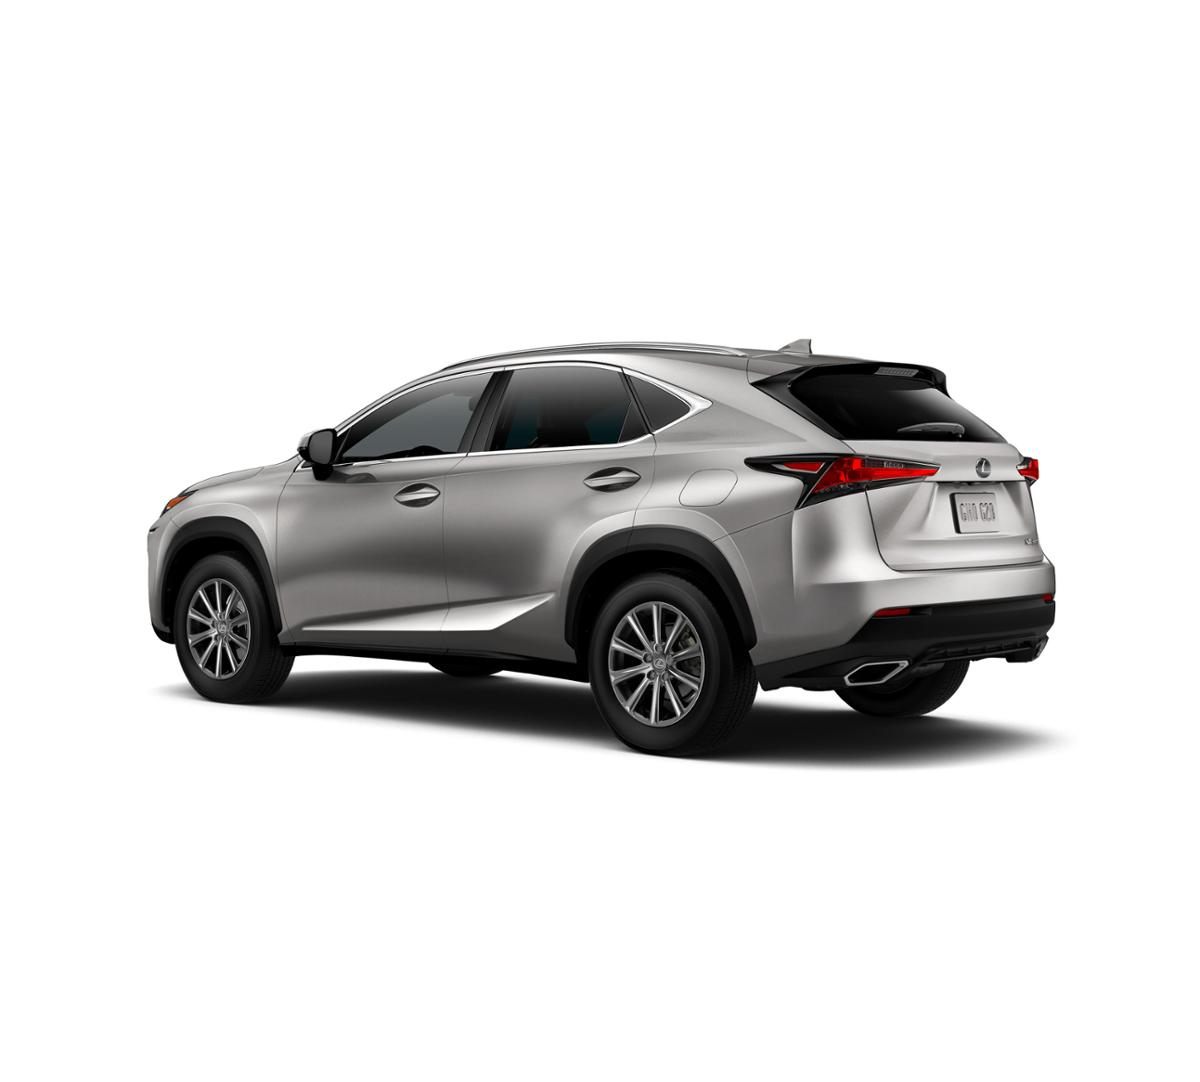 2019 Lexus NX 300 Atomic Silver : New Suv For